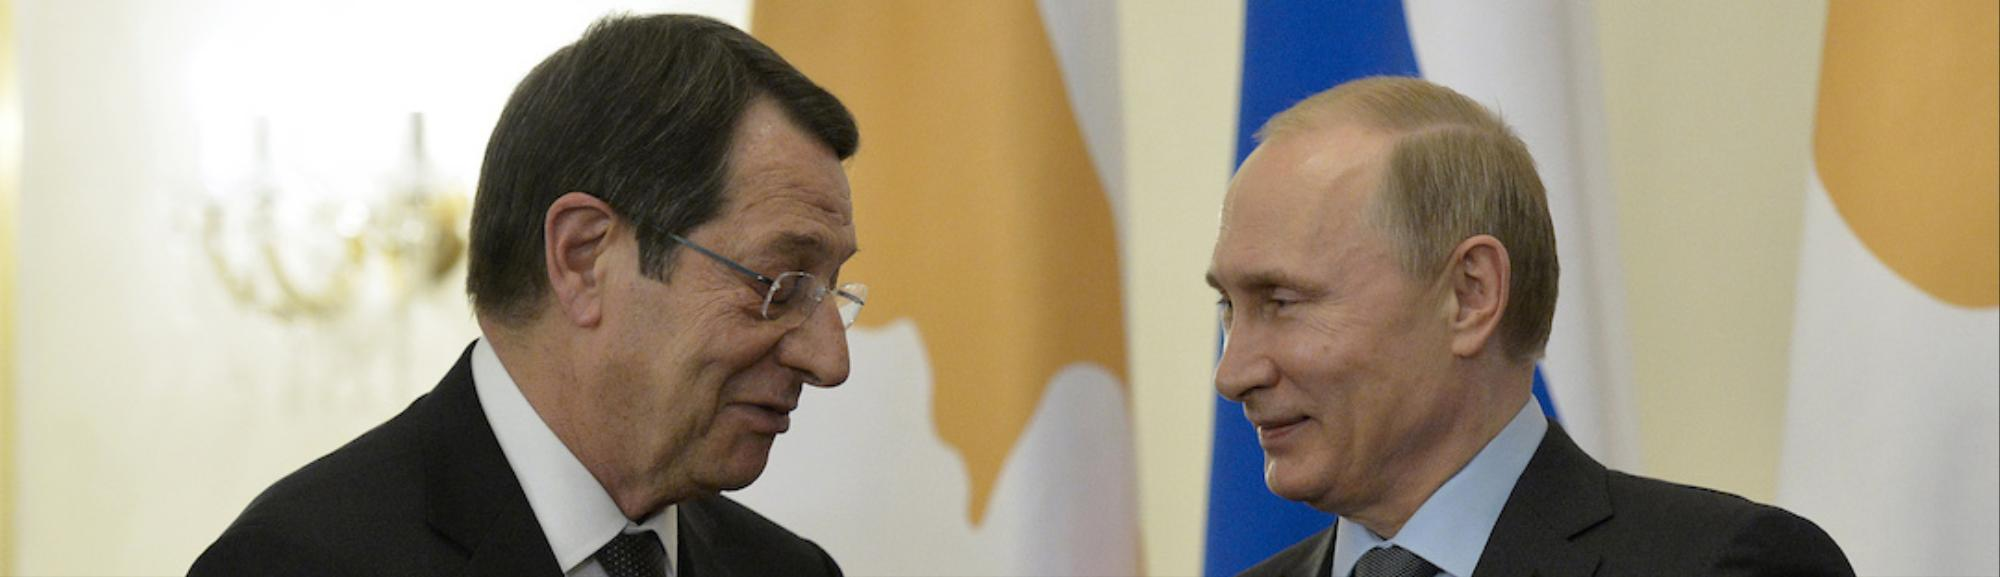 Cyprus Signs Military Deal to Let Russian Navy Use Its Ports